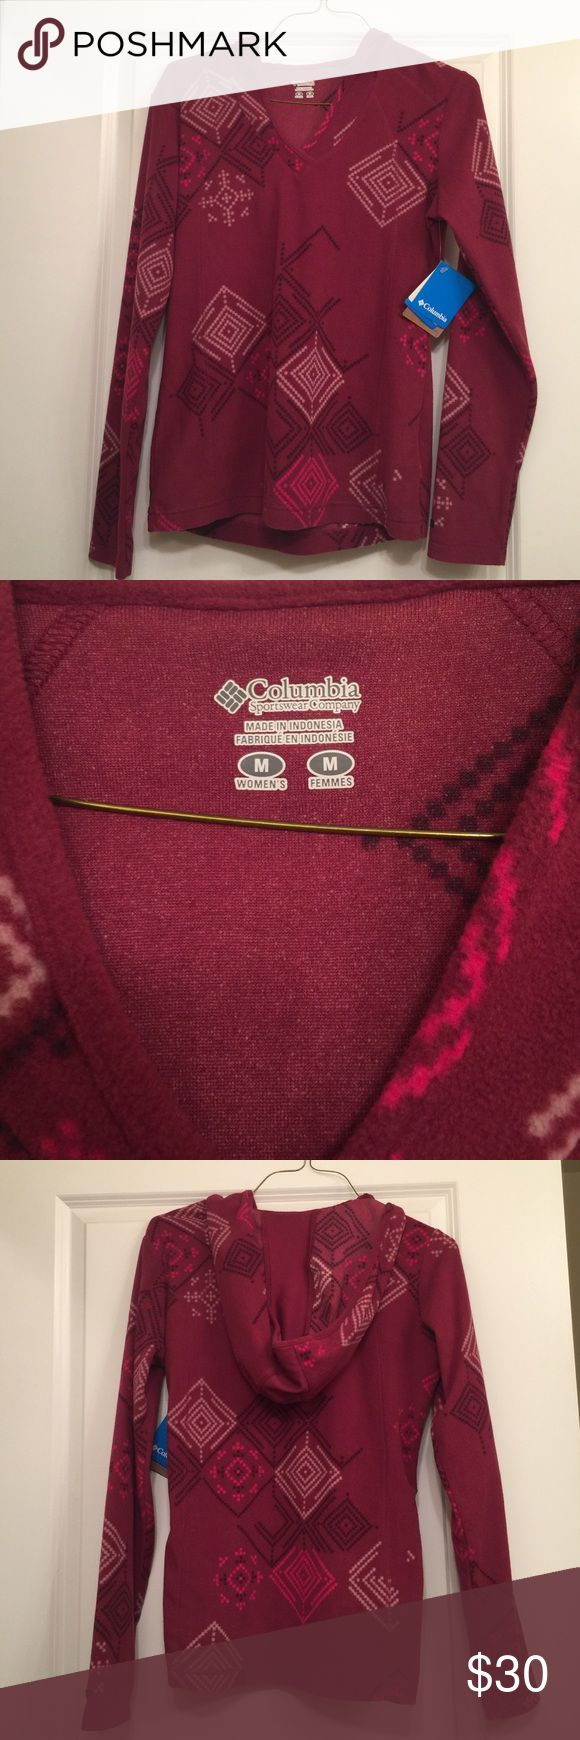 Columbia fleece pullover with hood! Columbia women's medium fleece pullover with hood. A nice light layer to be worn alone or diner a vest / jacket. The pattern is the best! Feel free to make an offer! New, never worn, with tags! Columbia Tops Sweatshirts & Hoodies